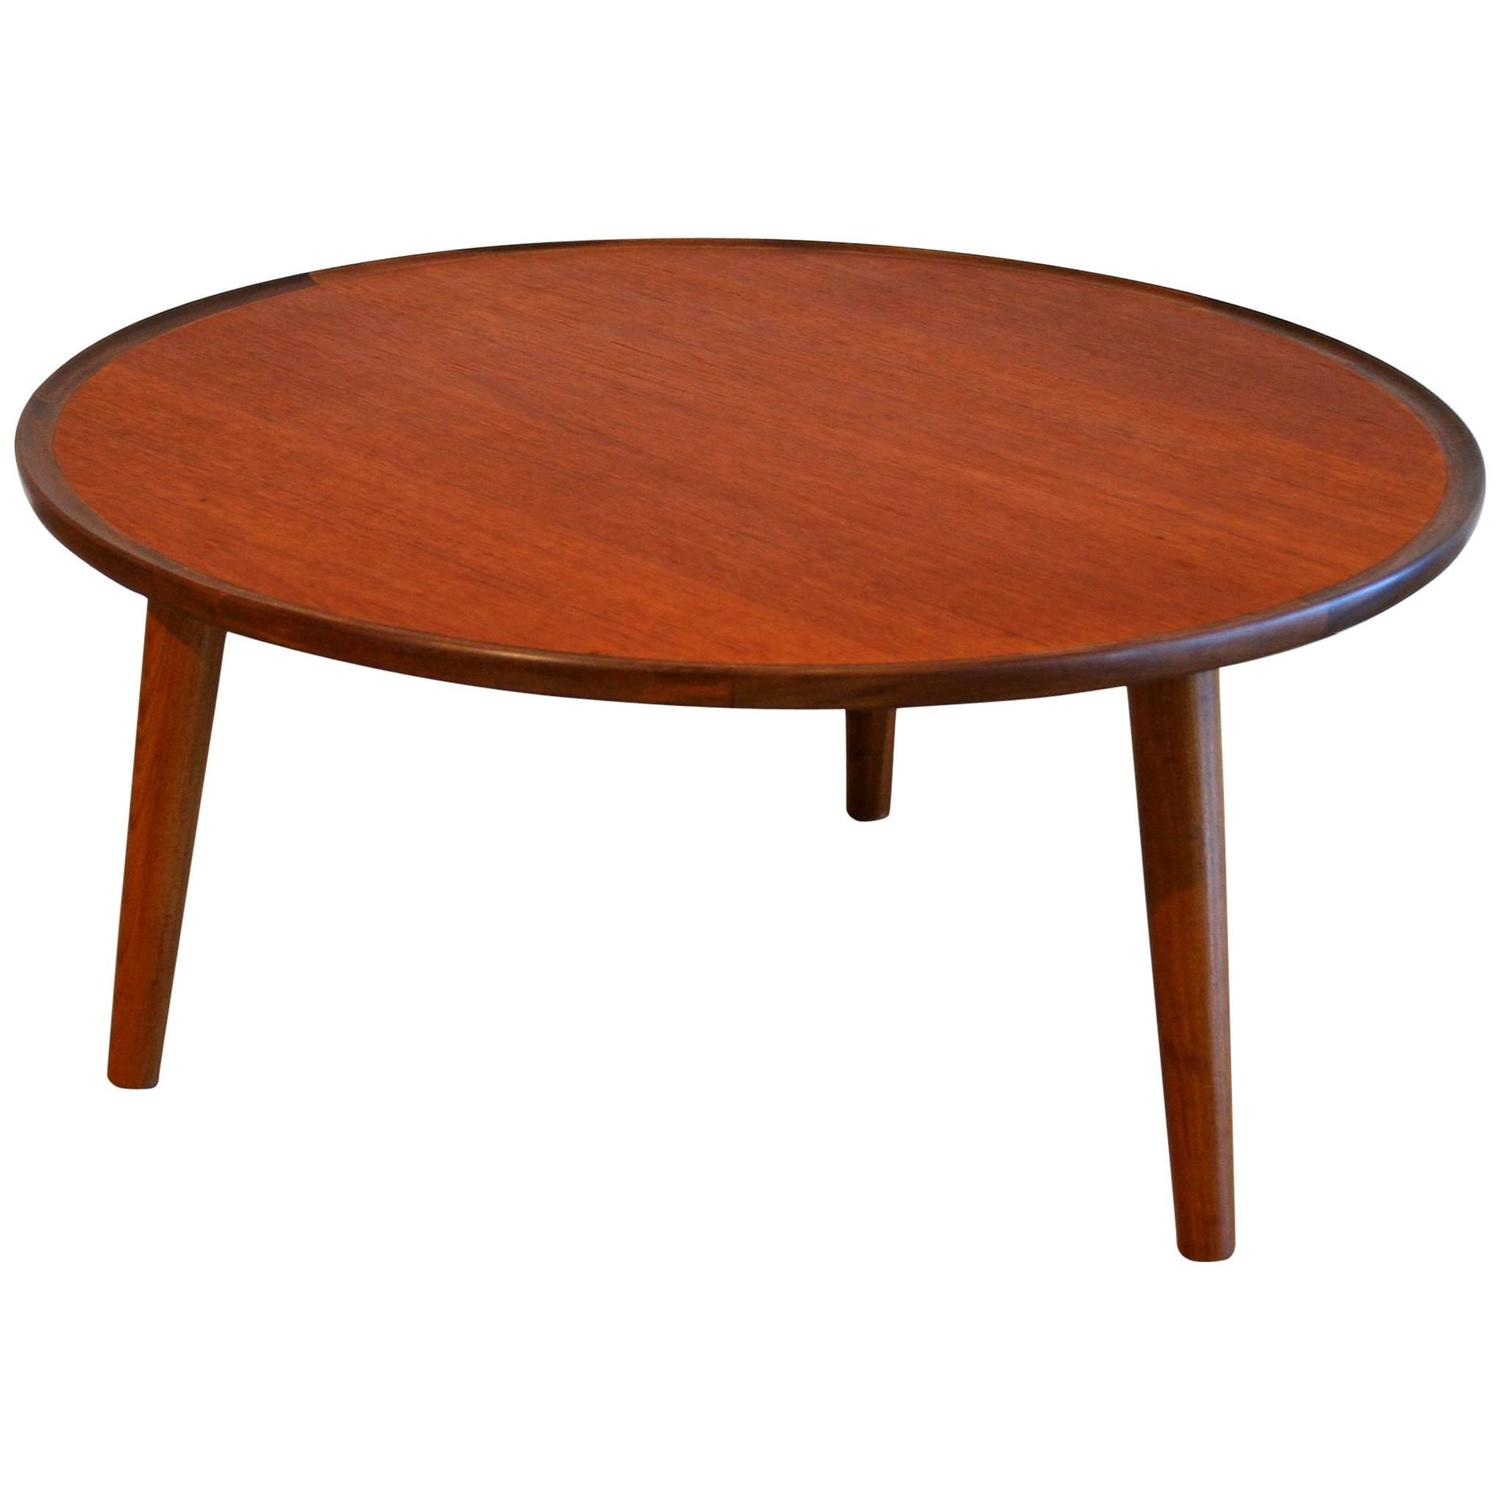 Vintage Danish Teak Round Coffee Table by Peter Hvidt at 1stdibs